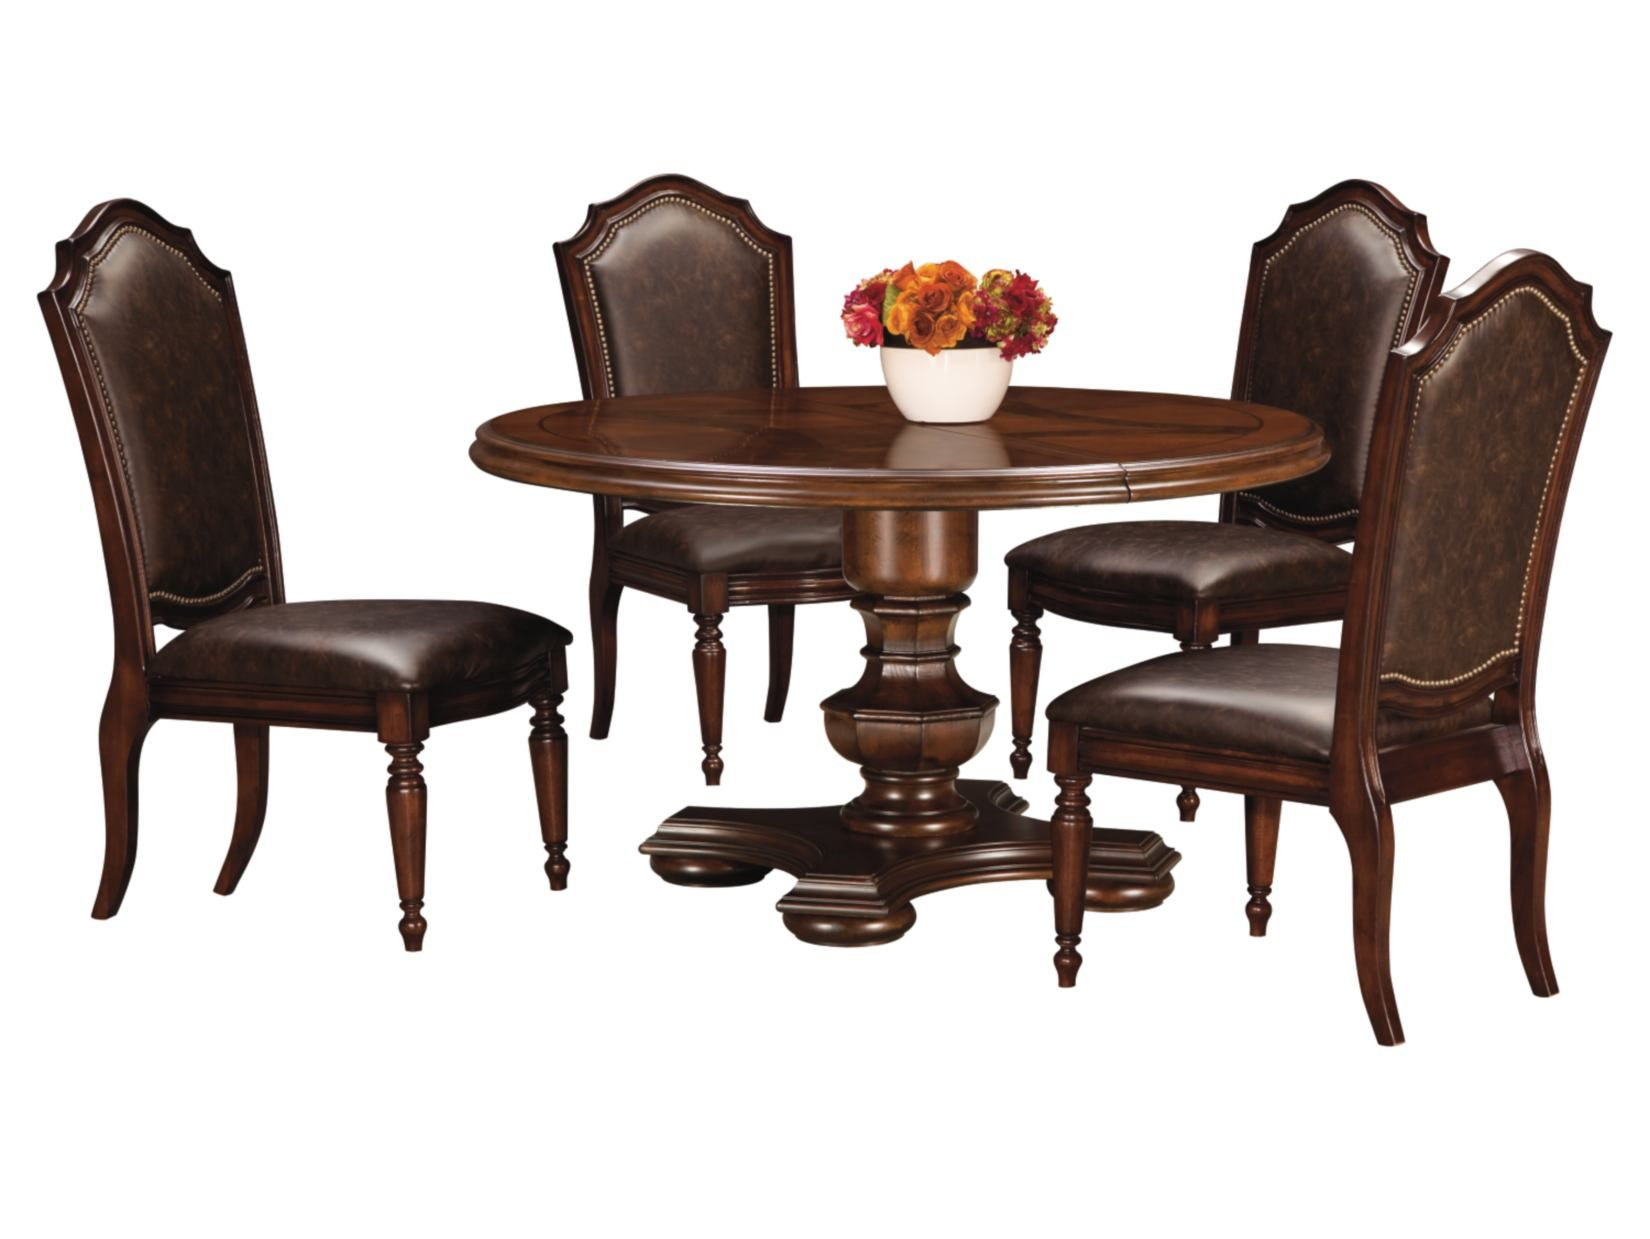 Chateau Emillion 5 PC Single Pedestal Dining Set Value City